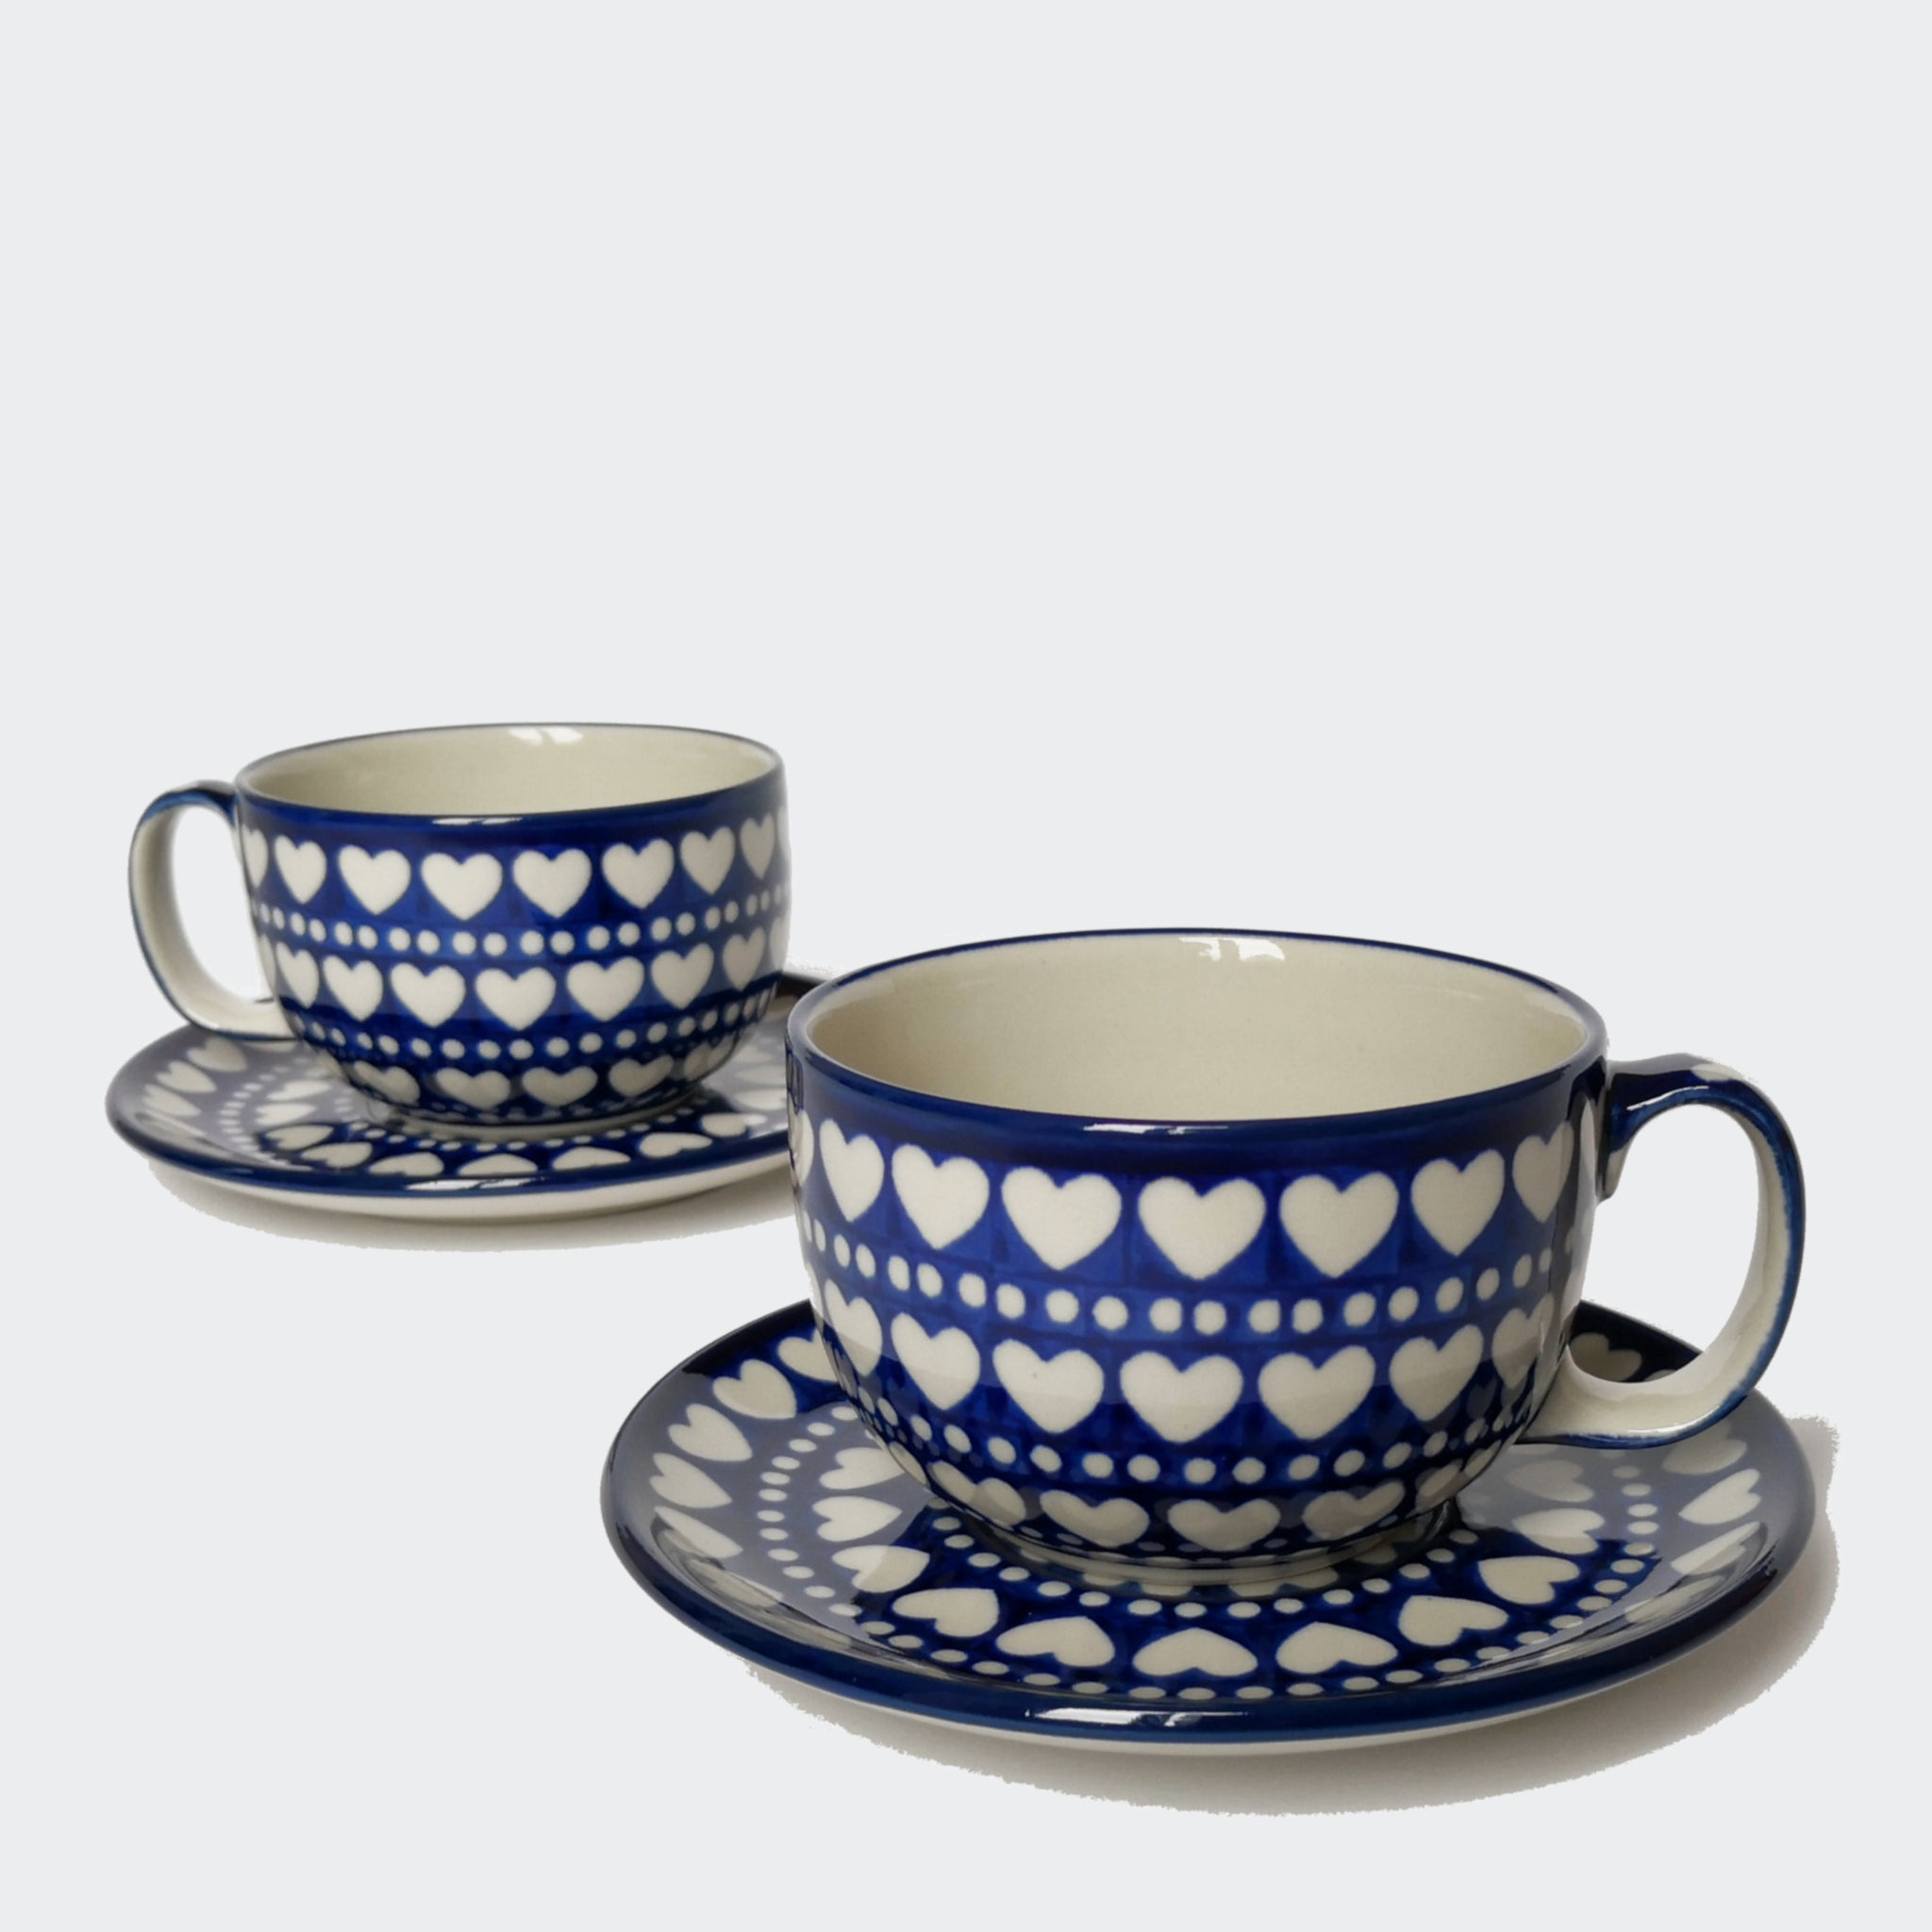 Pair of Large Boleslawiec Stoneware Cups and Saucers in Dark Blue and White Hearts and Dots Pattern